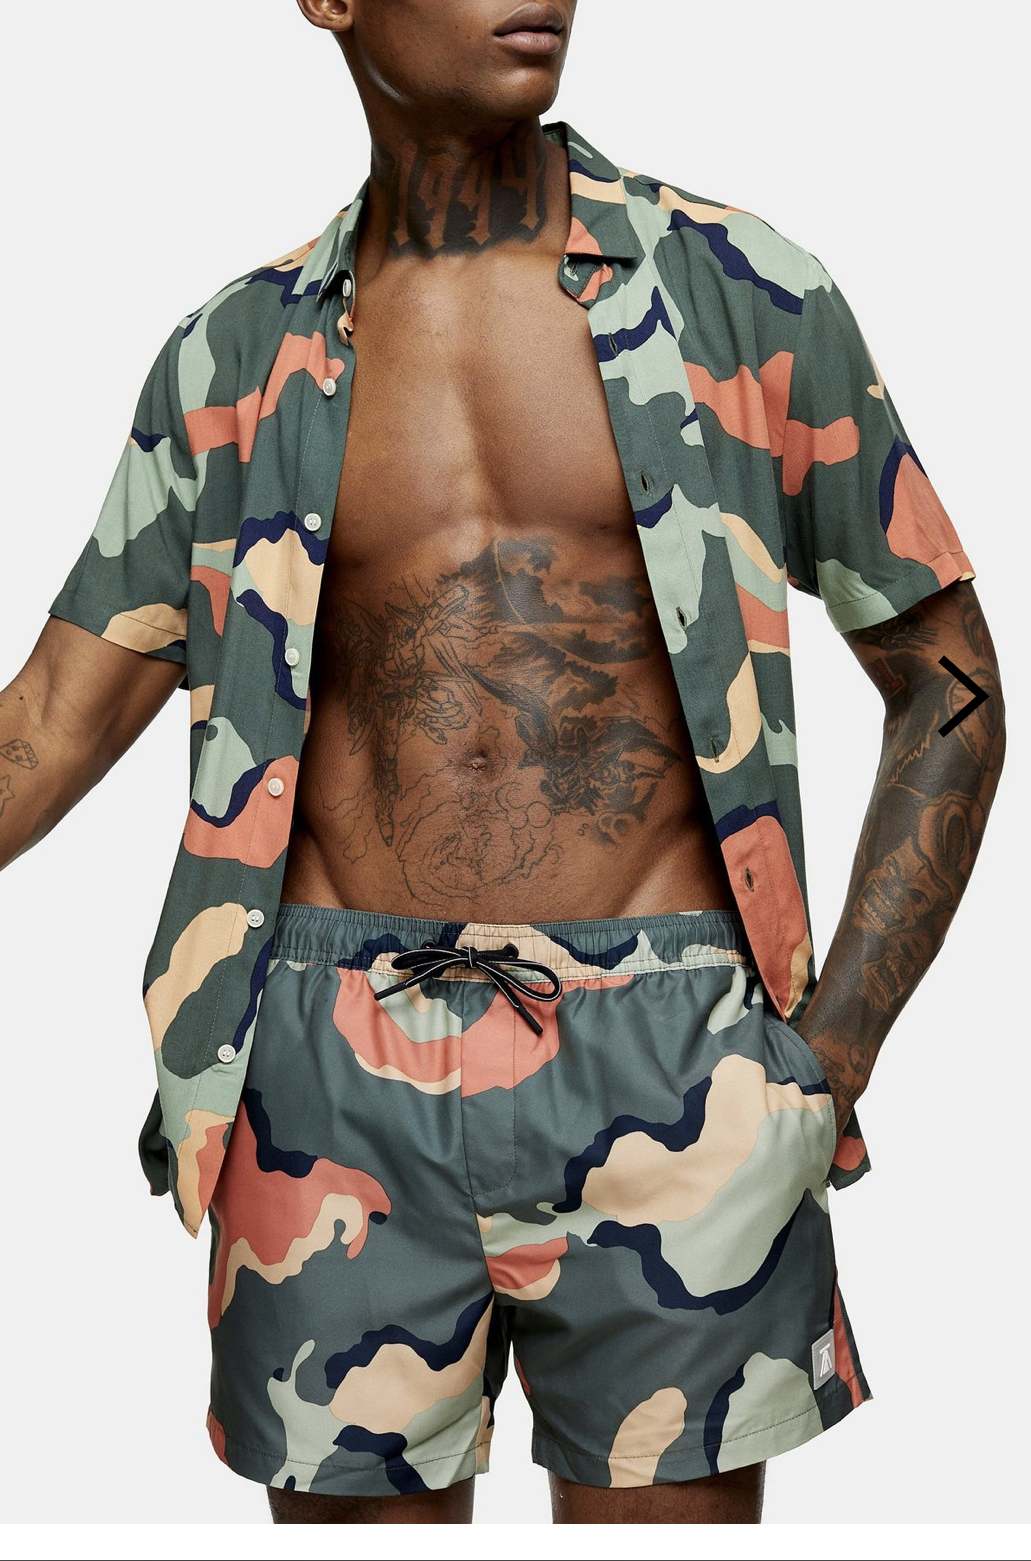 CONSIDERED Colourful Camouflage Print Swim Shorts